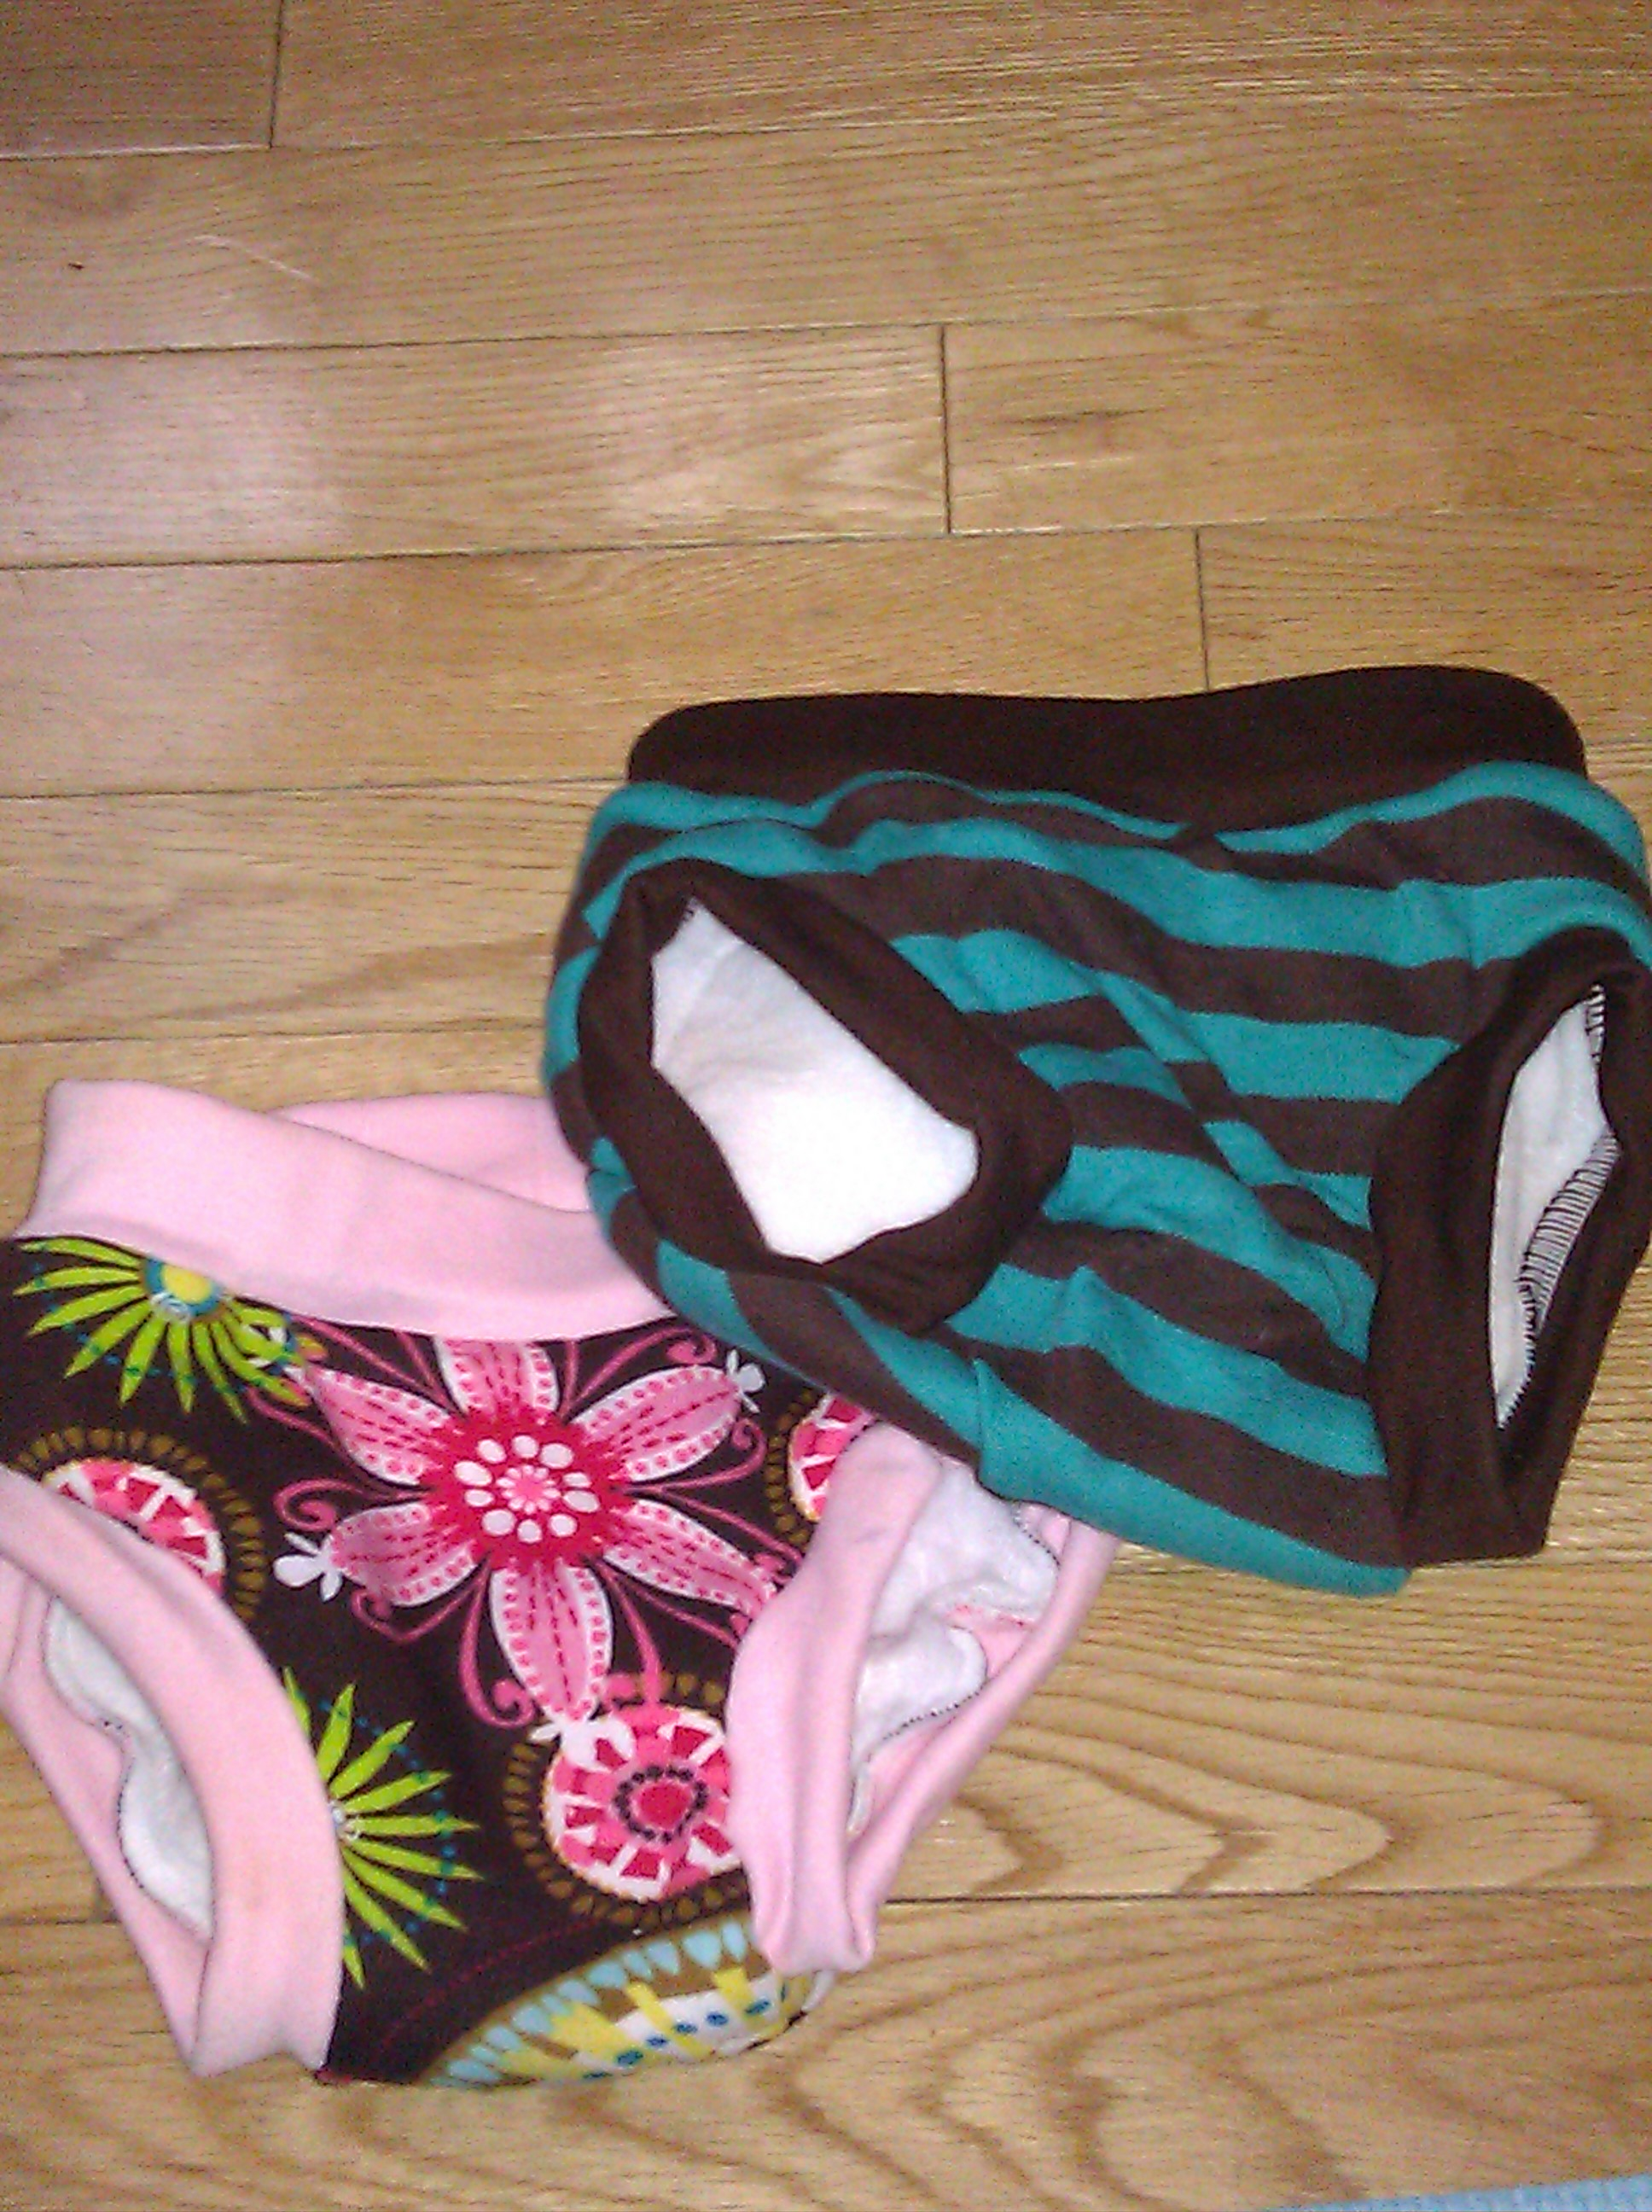 My baby's cute new training panties